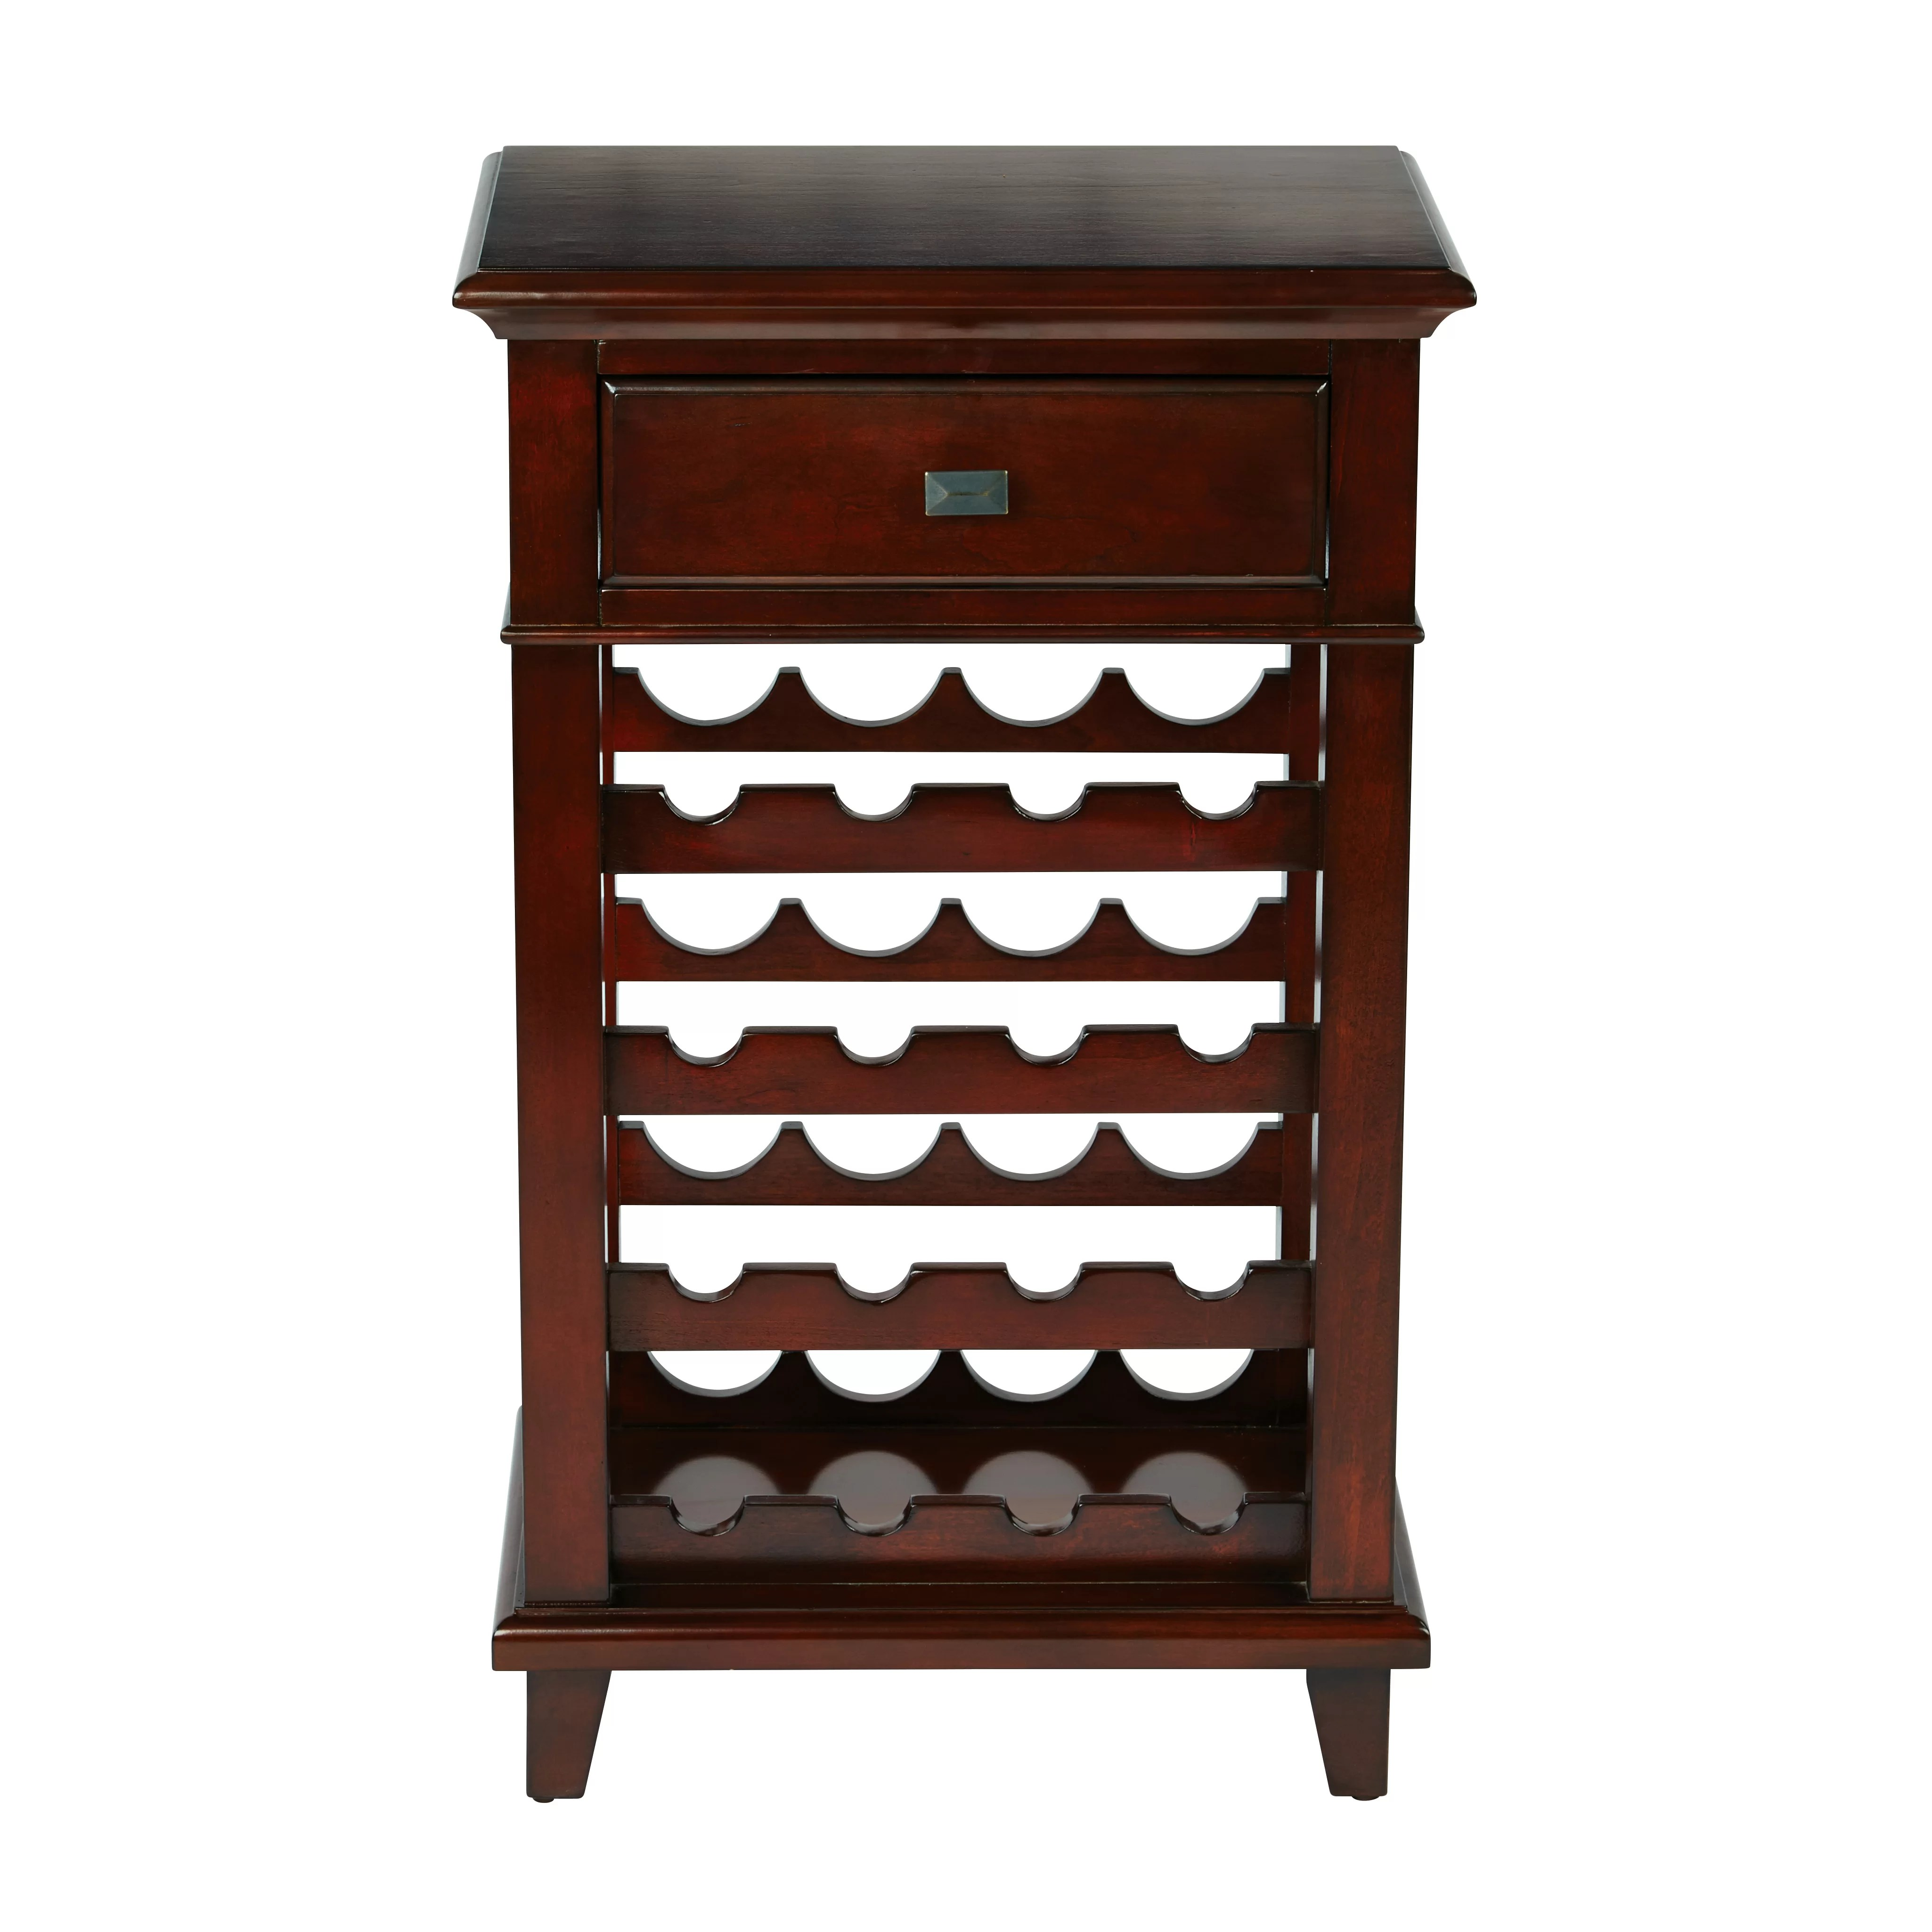 In Floor Wine Storage Osp Designs 16 Bottle Floor Wine Rack And Reviews Wayfair